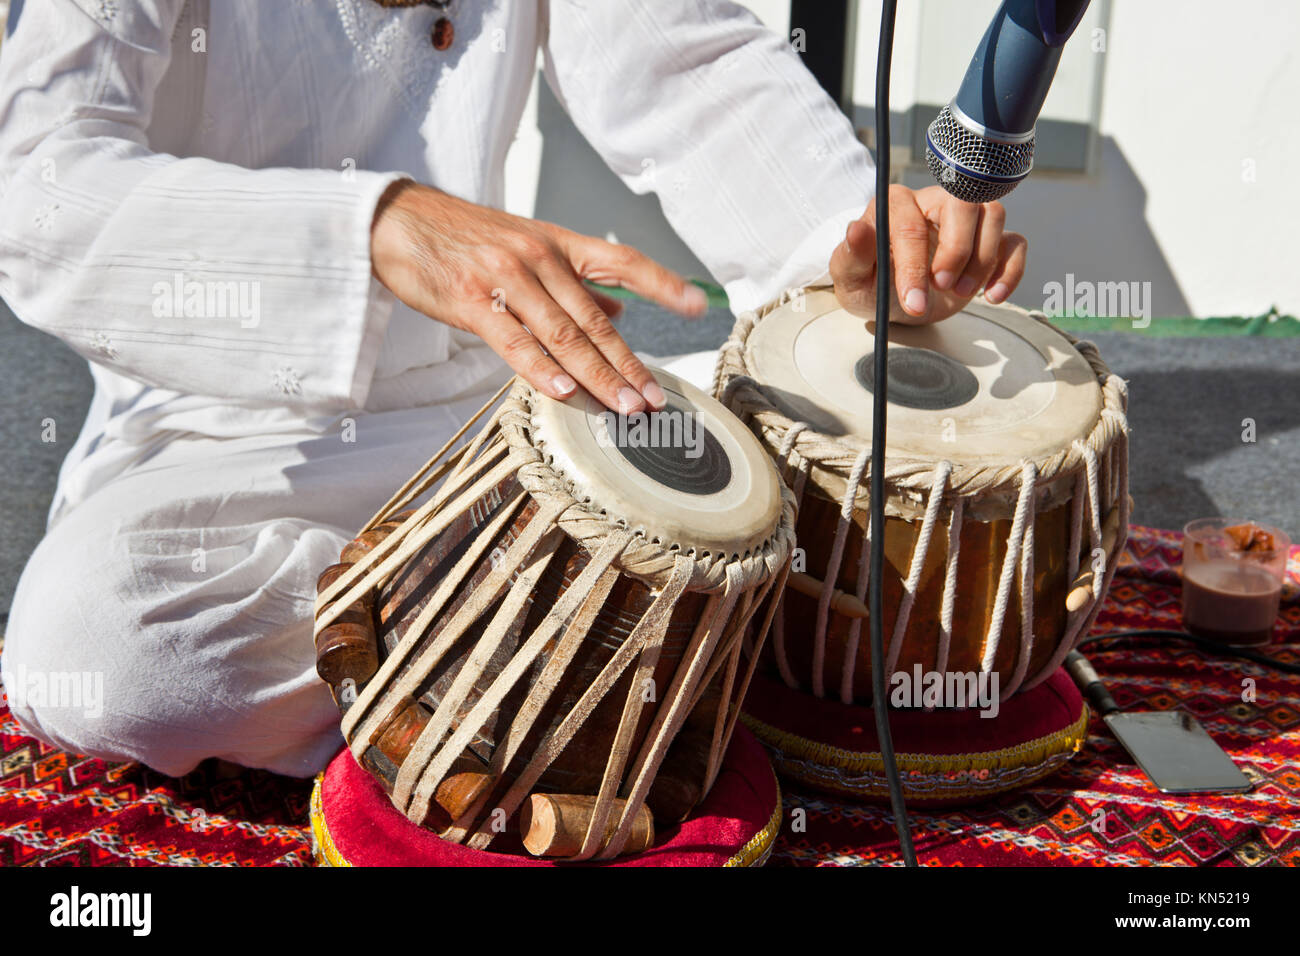 drums hindu single men Racial and ethnic minority populations learn how samhsa's programs,  the rate of binge drinking (drinking five or more drinks on a single occasion for men).